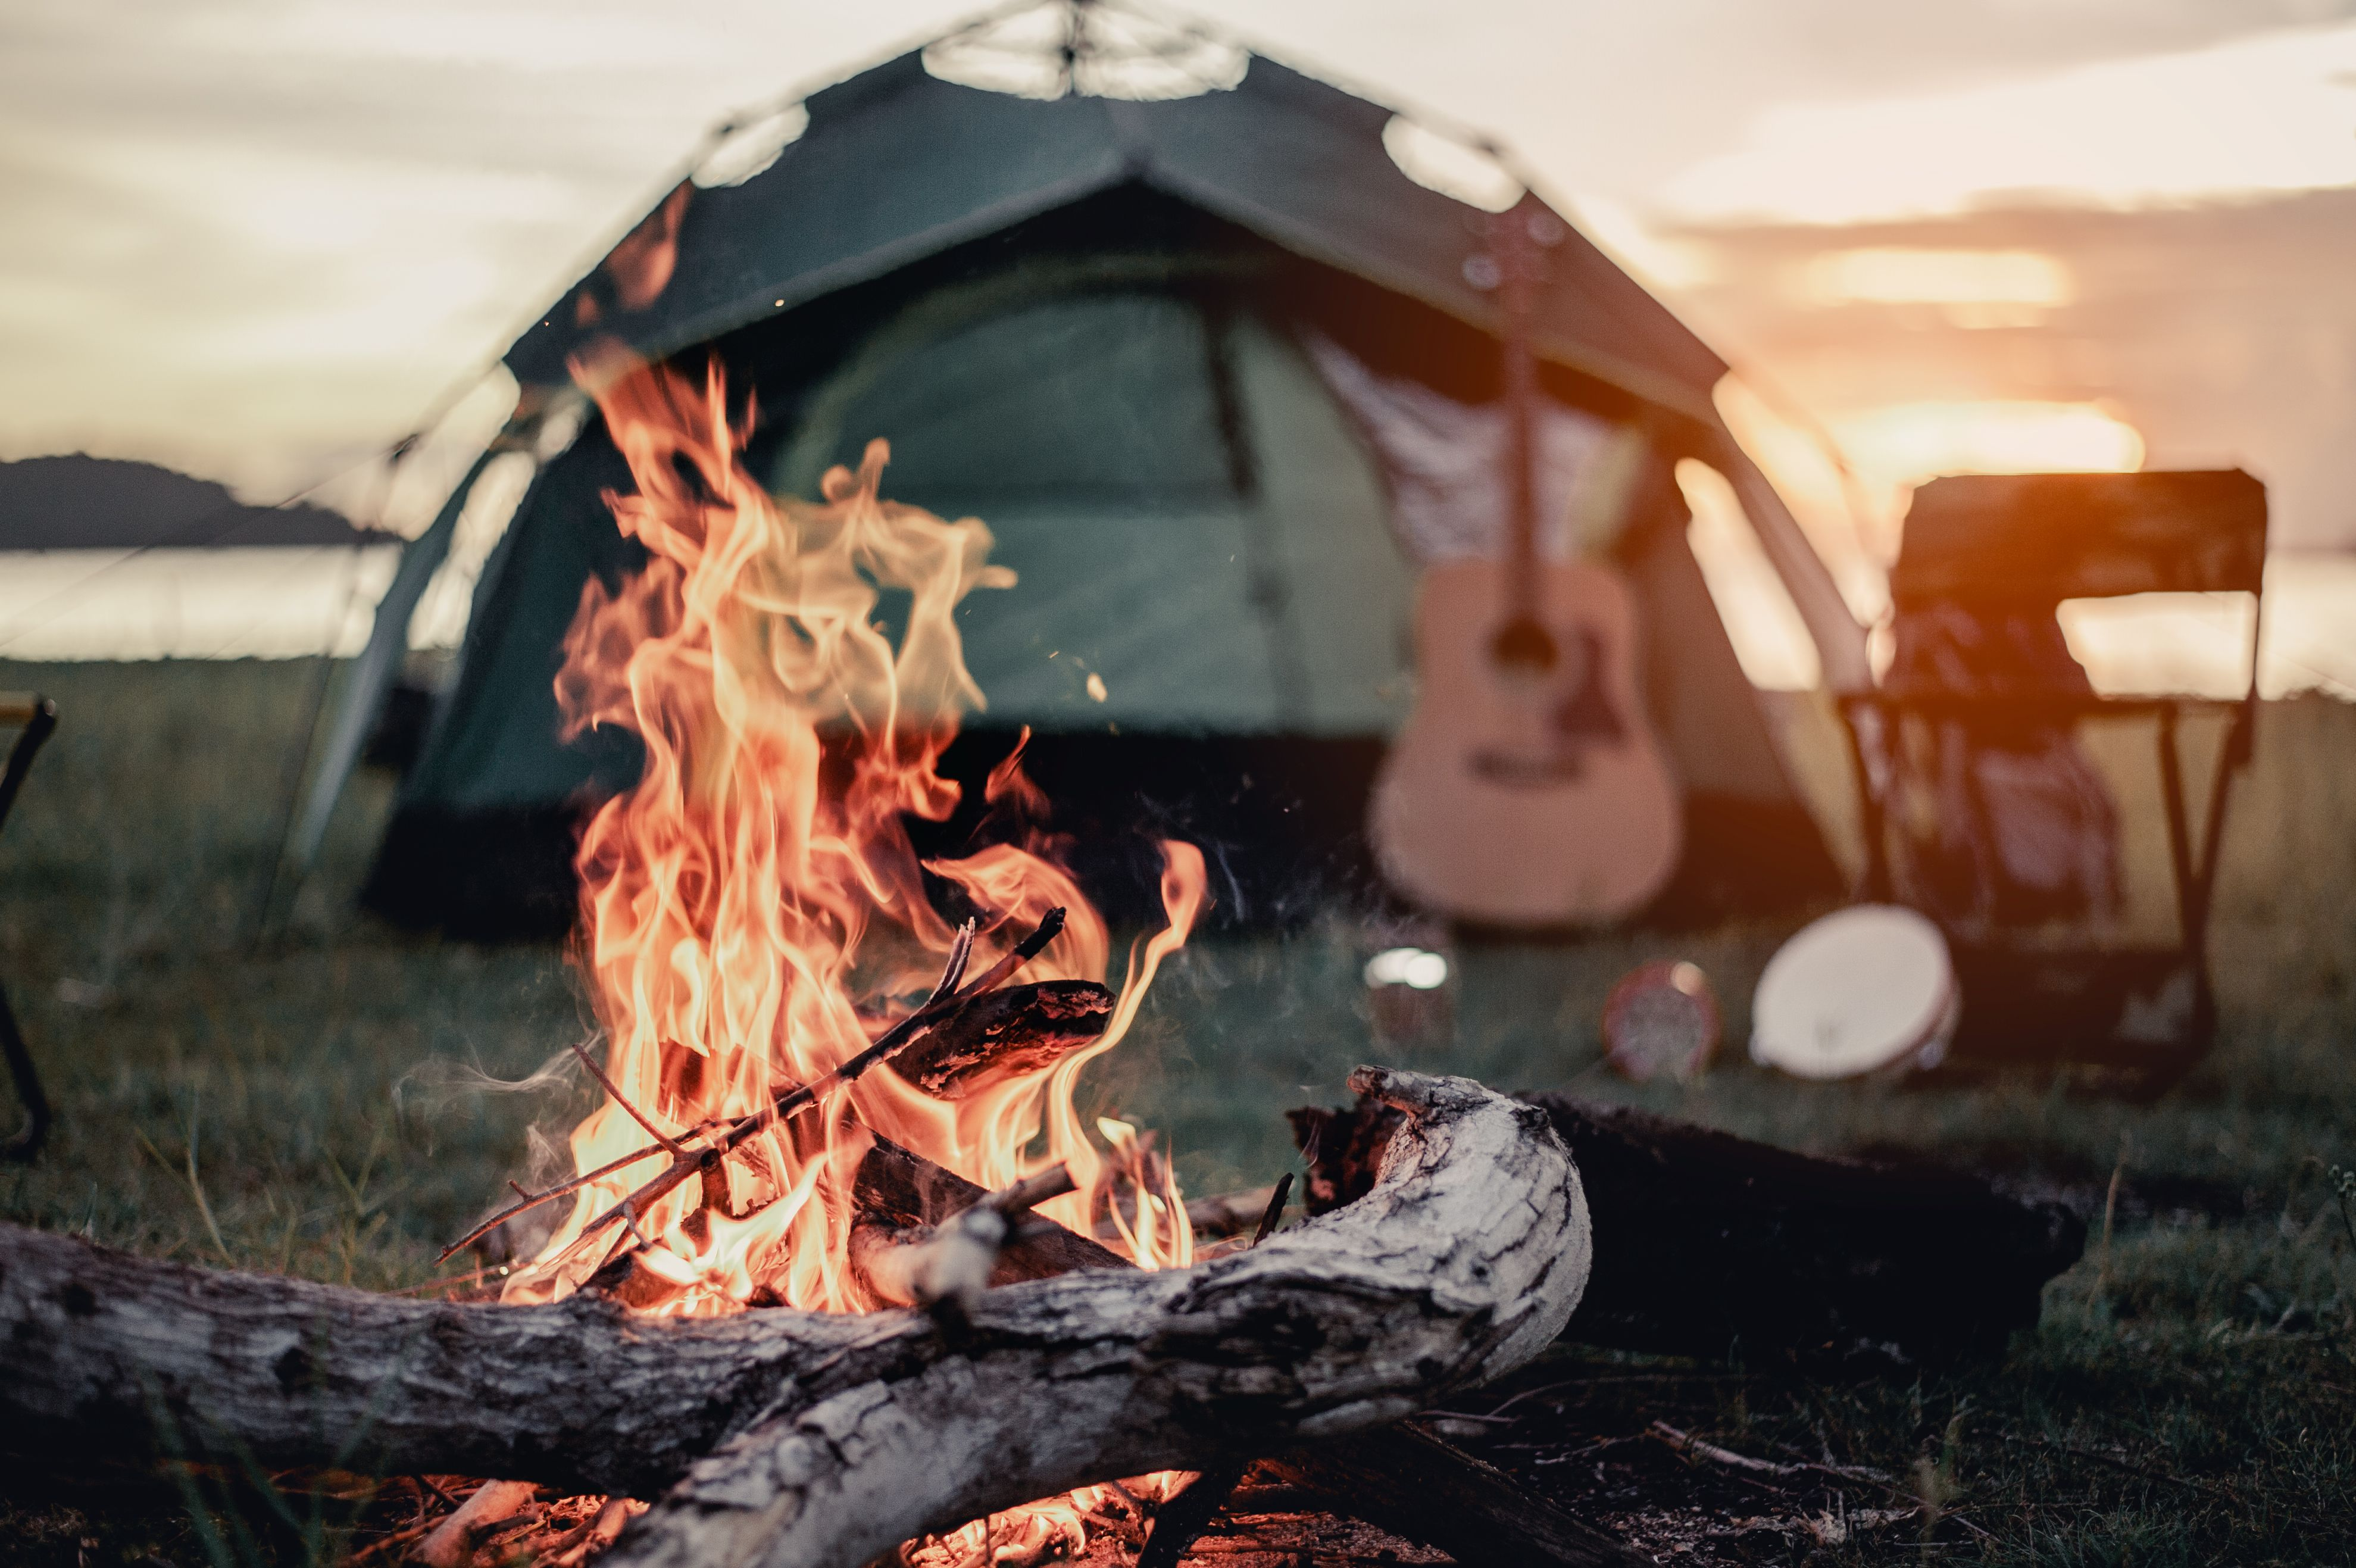 A campfire with a tent, chair, and guitar in the background.